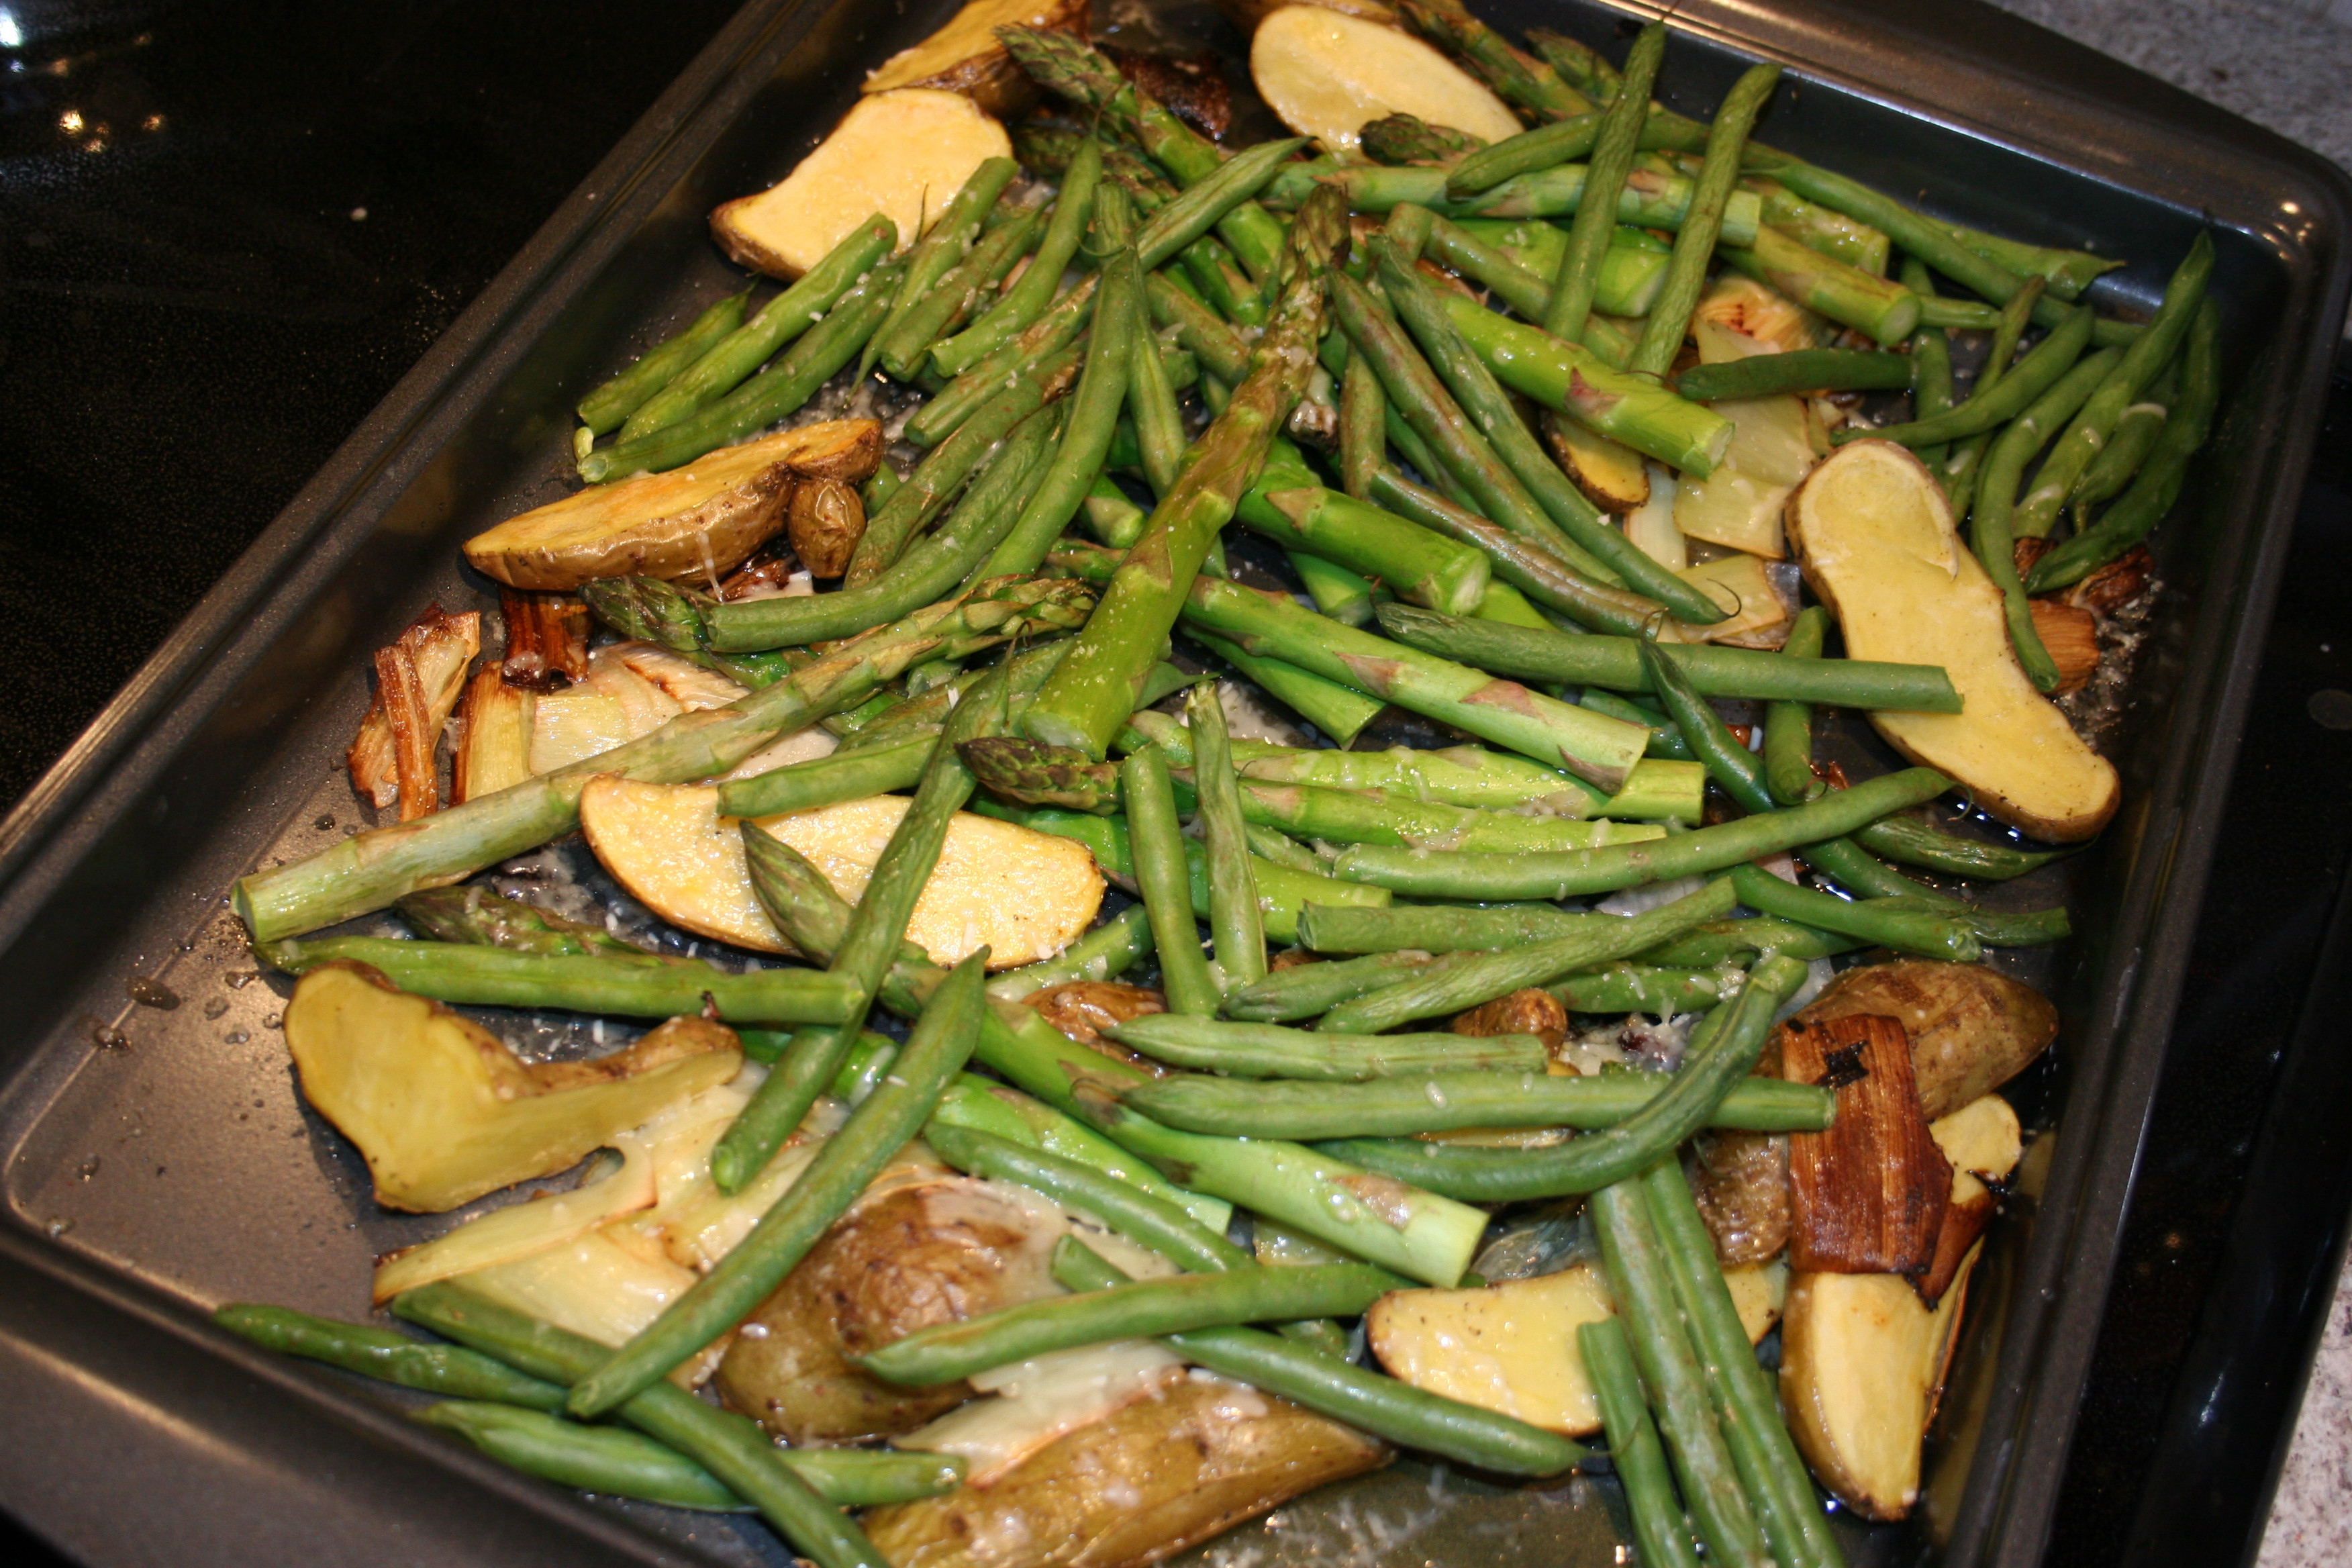 Roasted Root Vegetables Barefoot Contessa  roasted root ve ables barefoot contessa